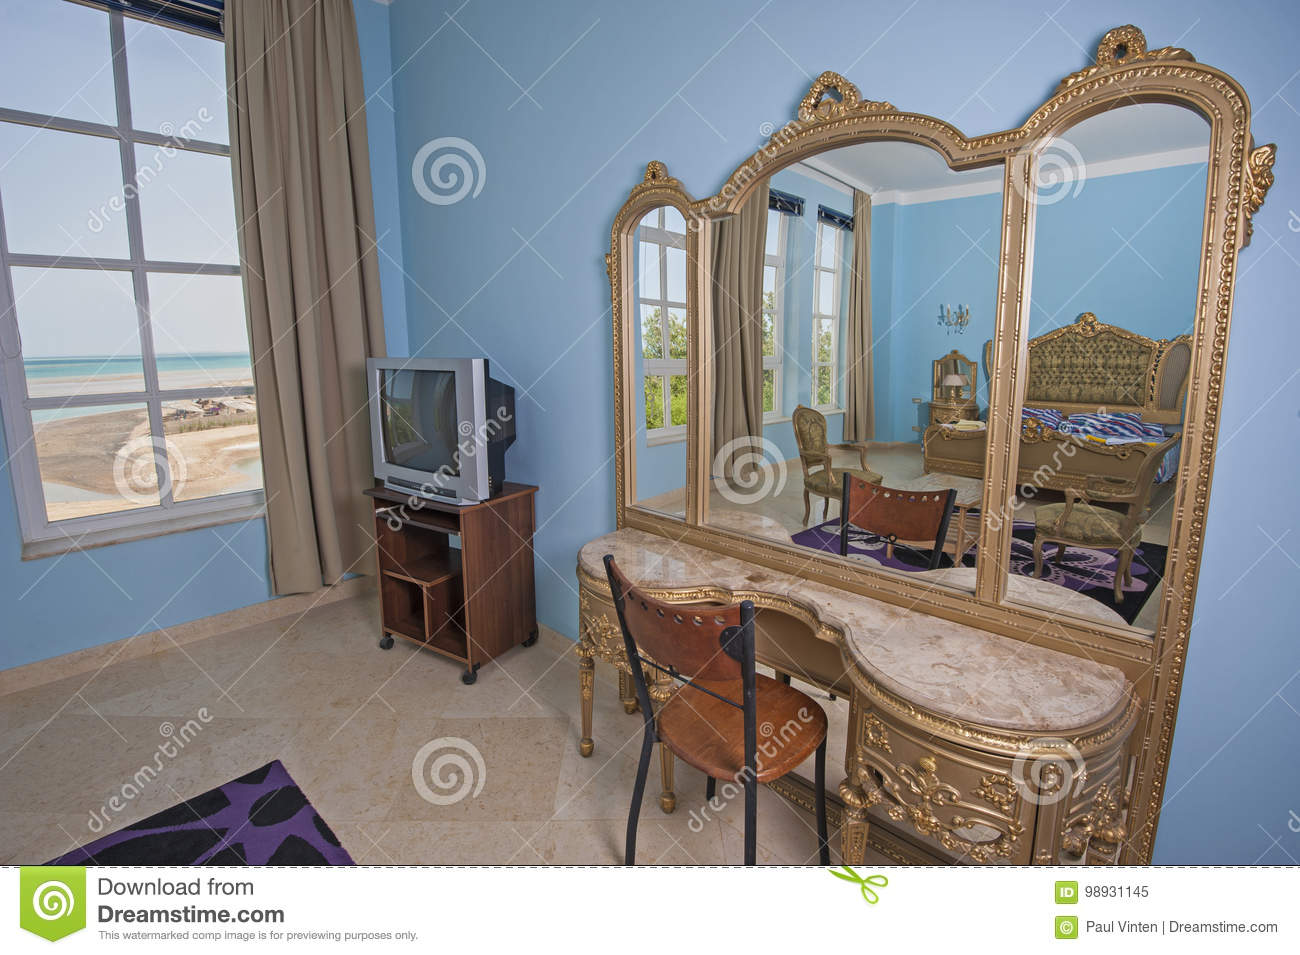 Interior Design Of Bedroom In Villa With Dressing Table Stock Image ...